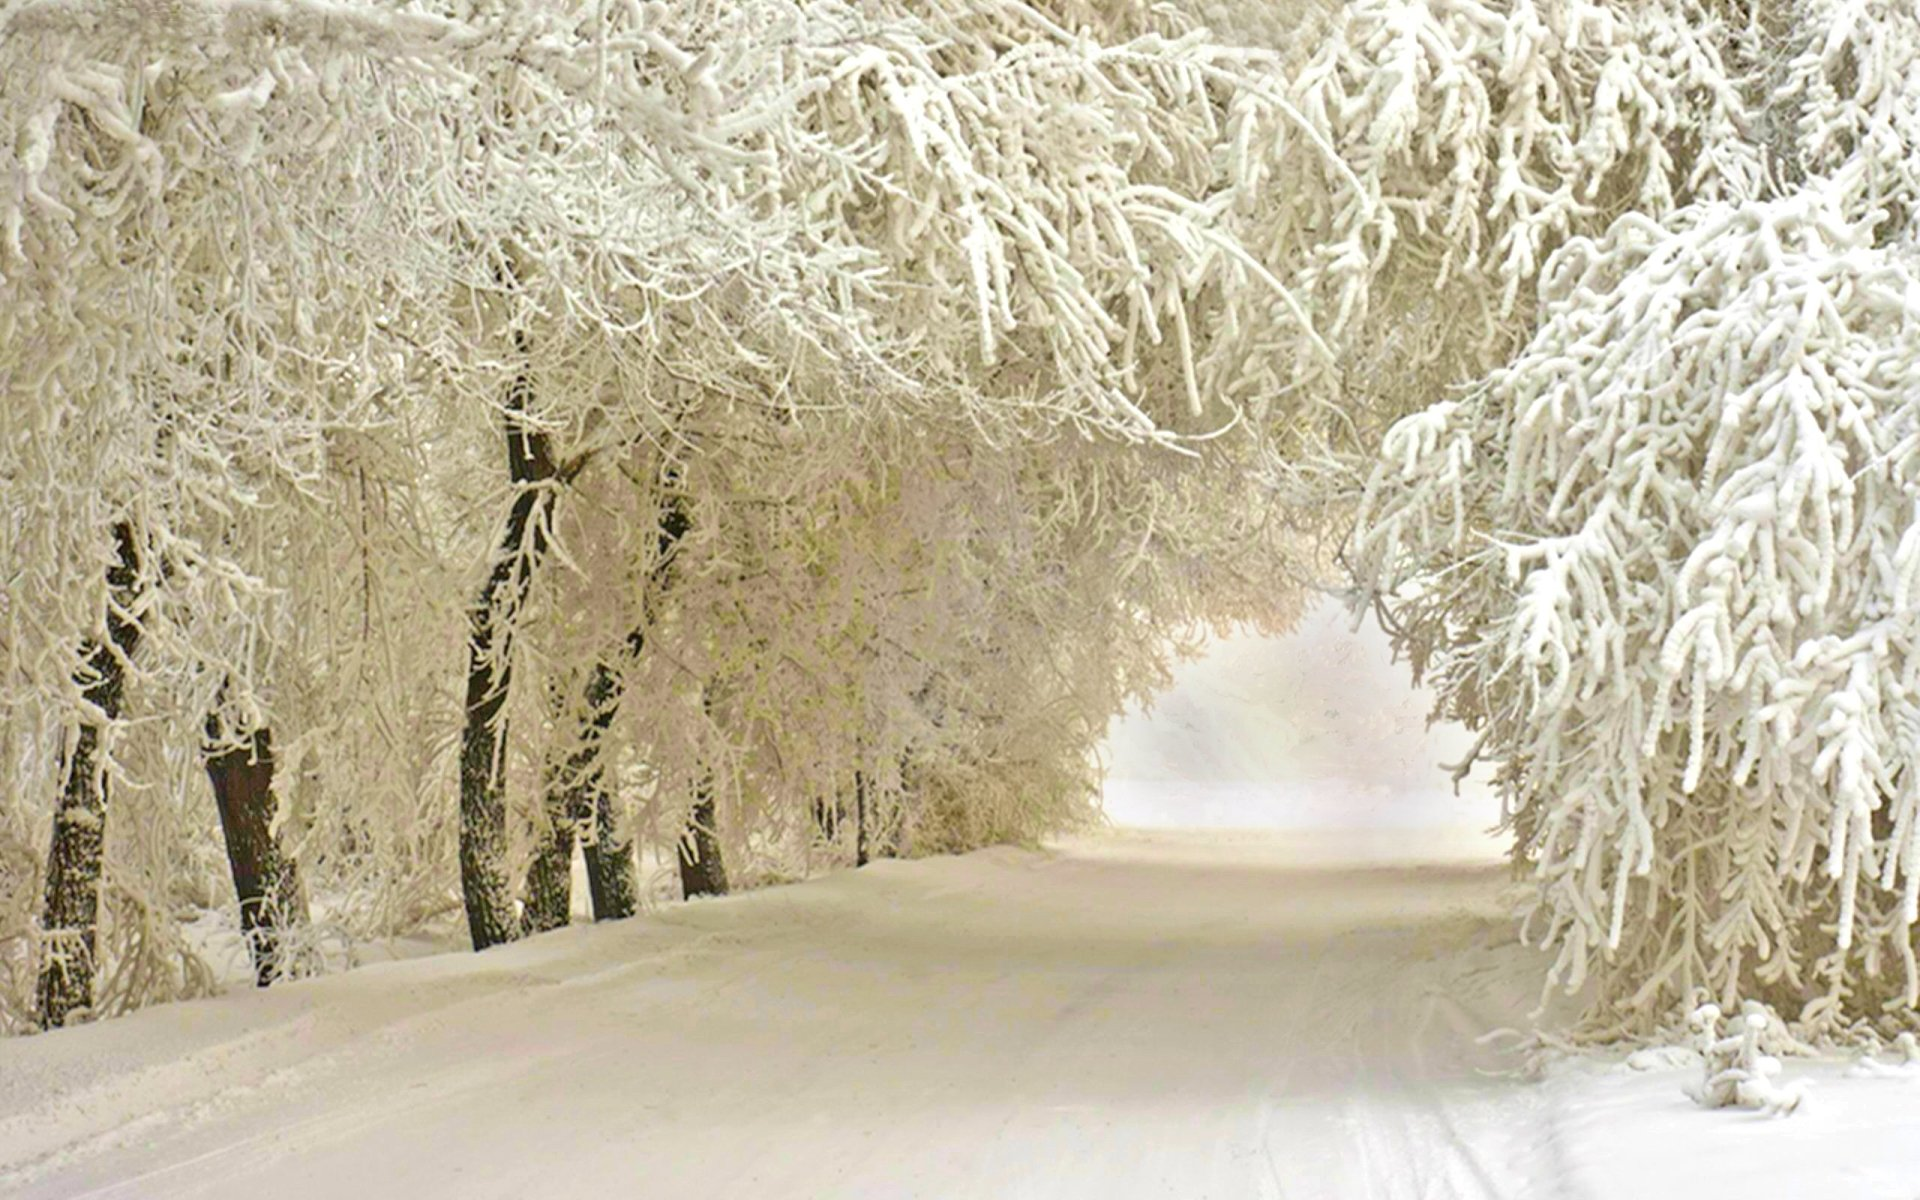 Earth - Winter  Nature Tree Road Snow White Wallpaper